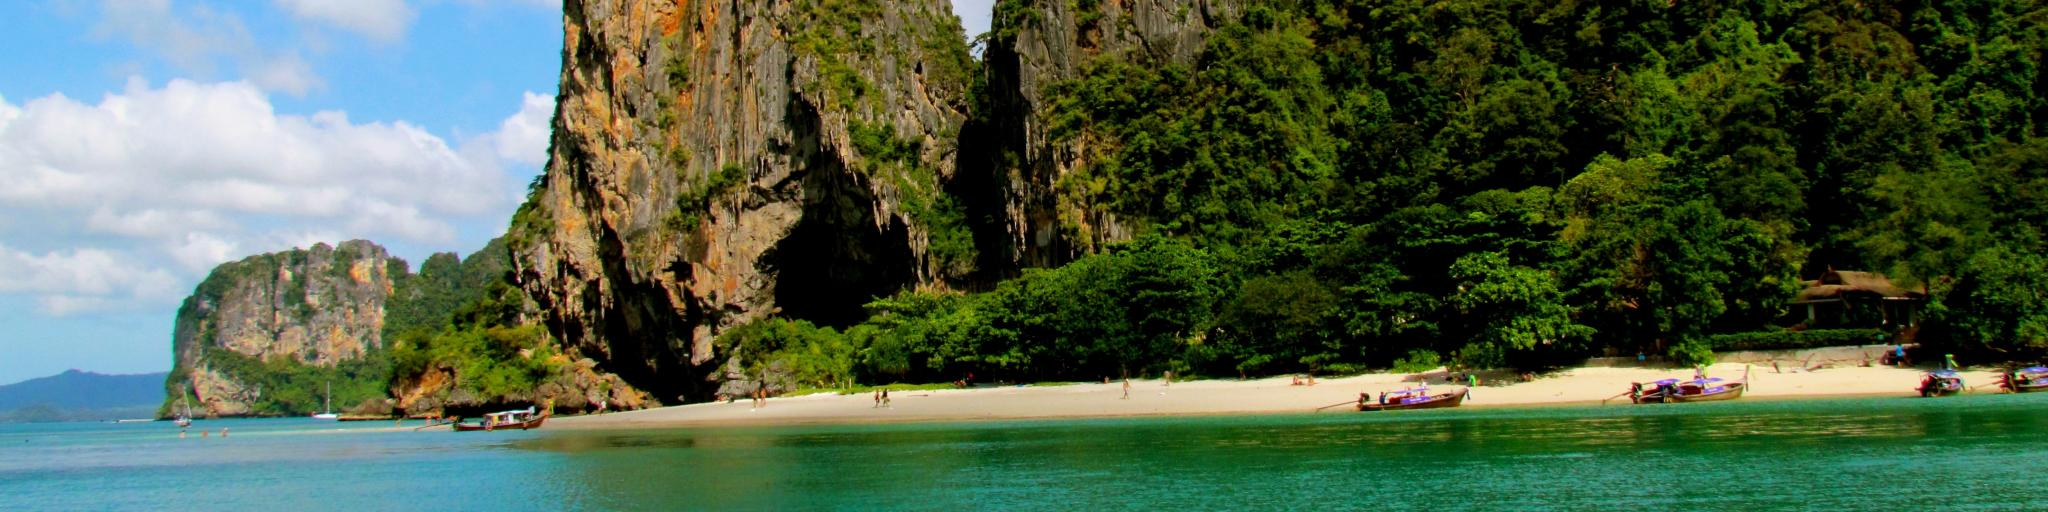 Sandy beaches, rocky cliffs and turquoise water in Phuket, Thailand